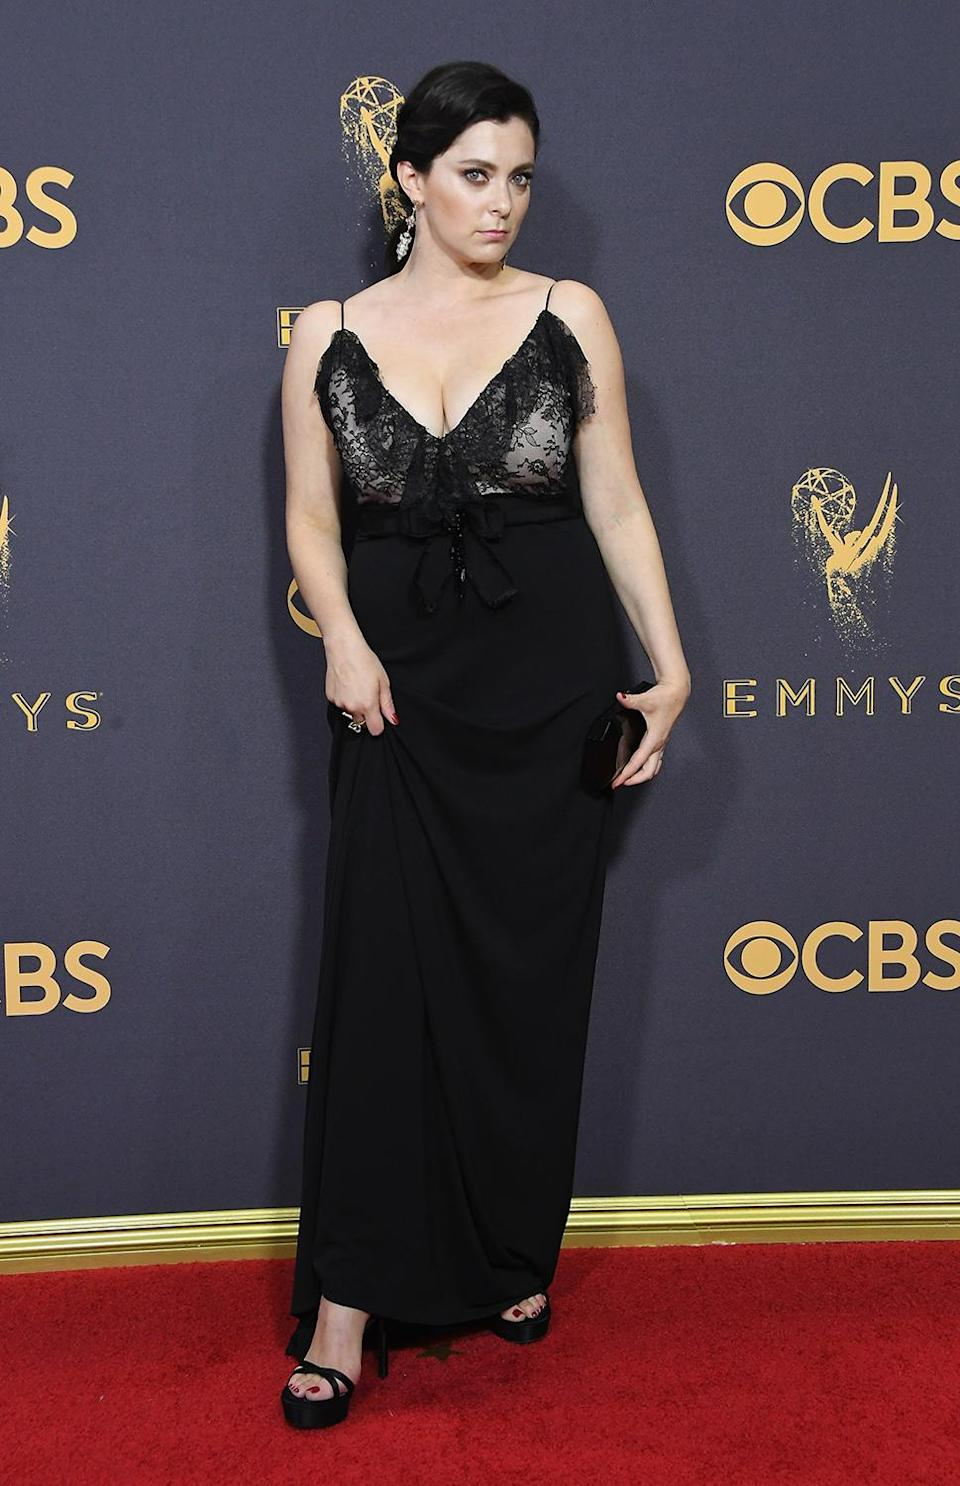 <p>Rachel Bloom attends the 69th Annual Primetime Emmy Awards at Microsoft Theater on September 17, 2017 in Los Angeles, California. (Photo by Steve Granitz/WireImage) </p>